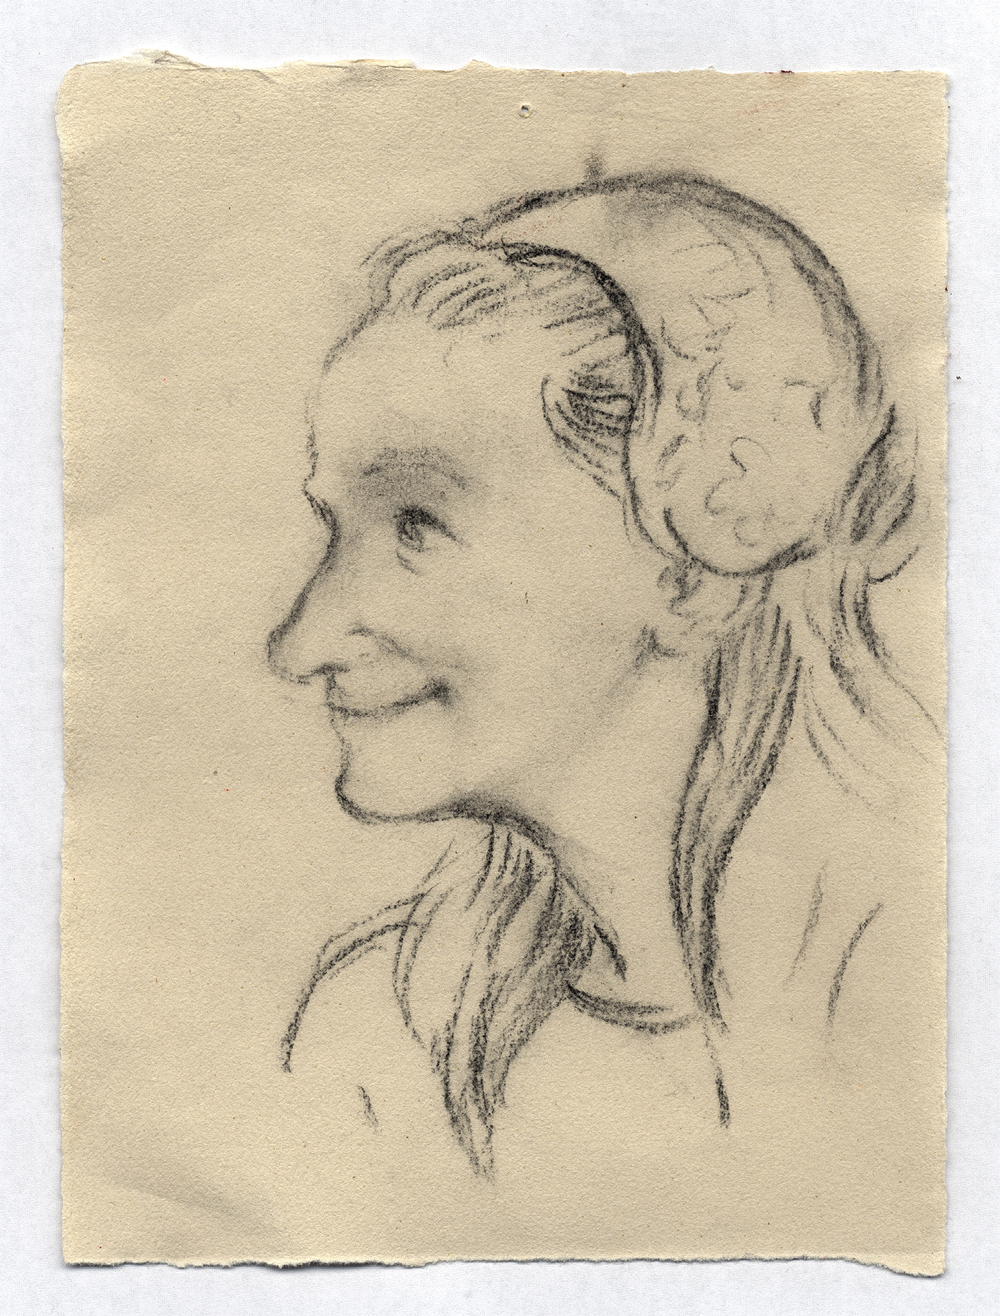 Study for 'Girl with a Distaff', charcoal on paper, 2007